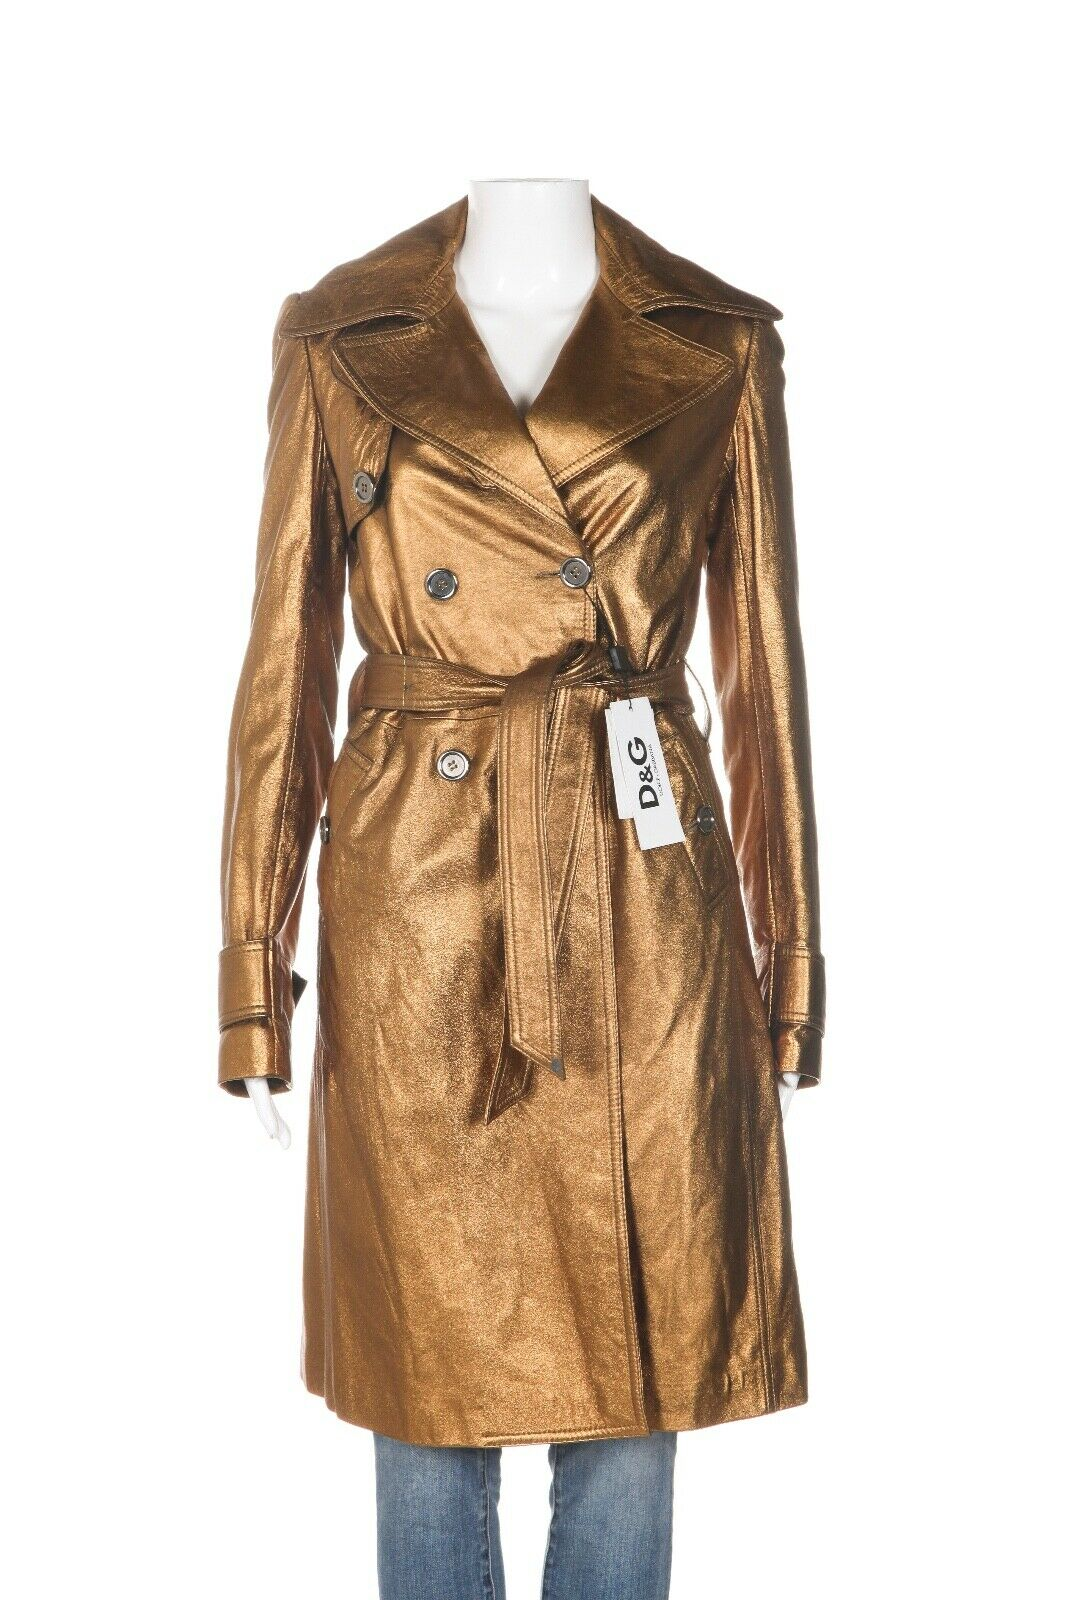 D&G Lambskin Leather Metallic Trench Coat Size 38 (XS)